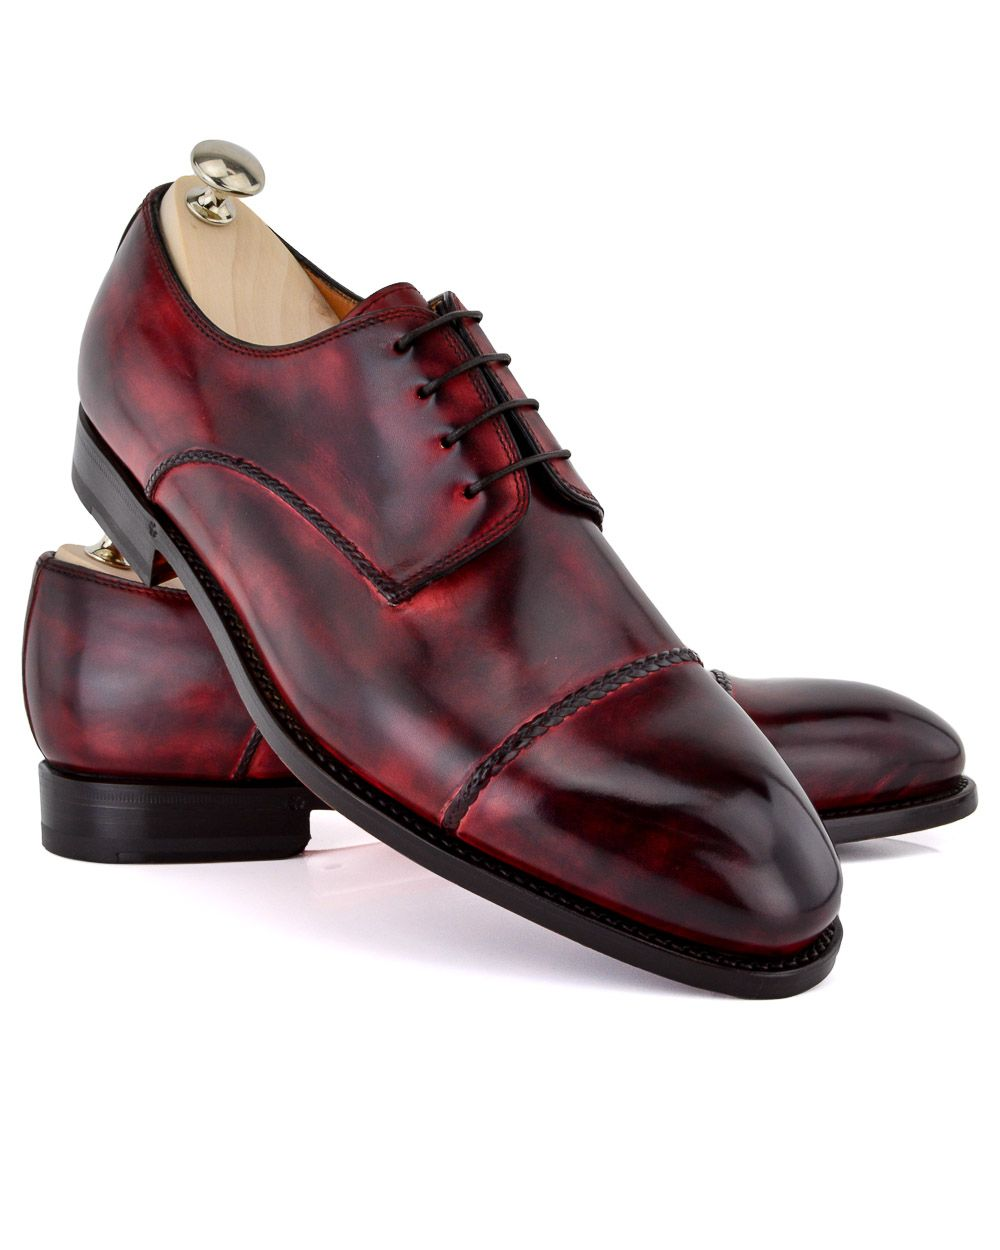 Blake Italy Handmade Stitching Classic Fashion Luxury Men Genuine Leather Loafers Shoes For Black